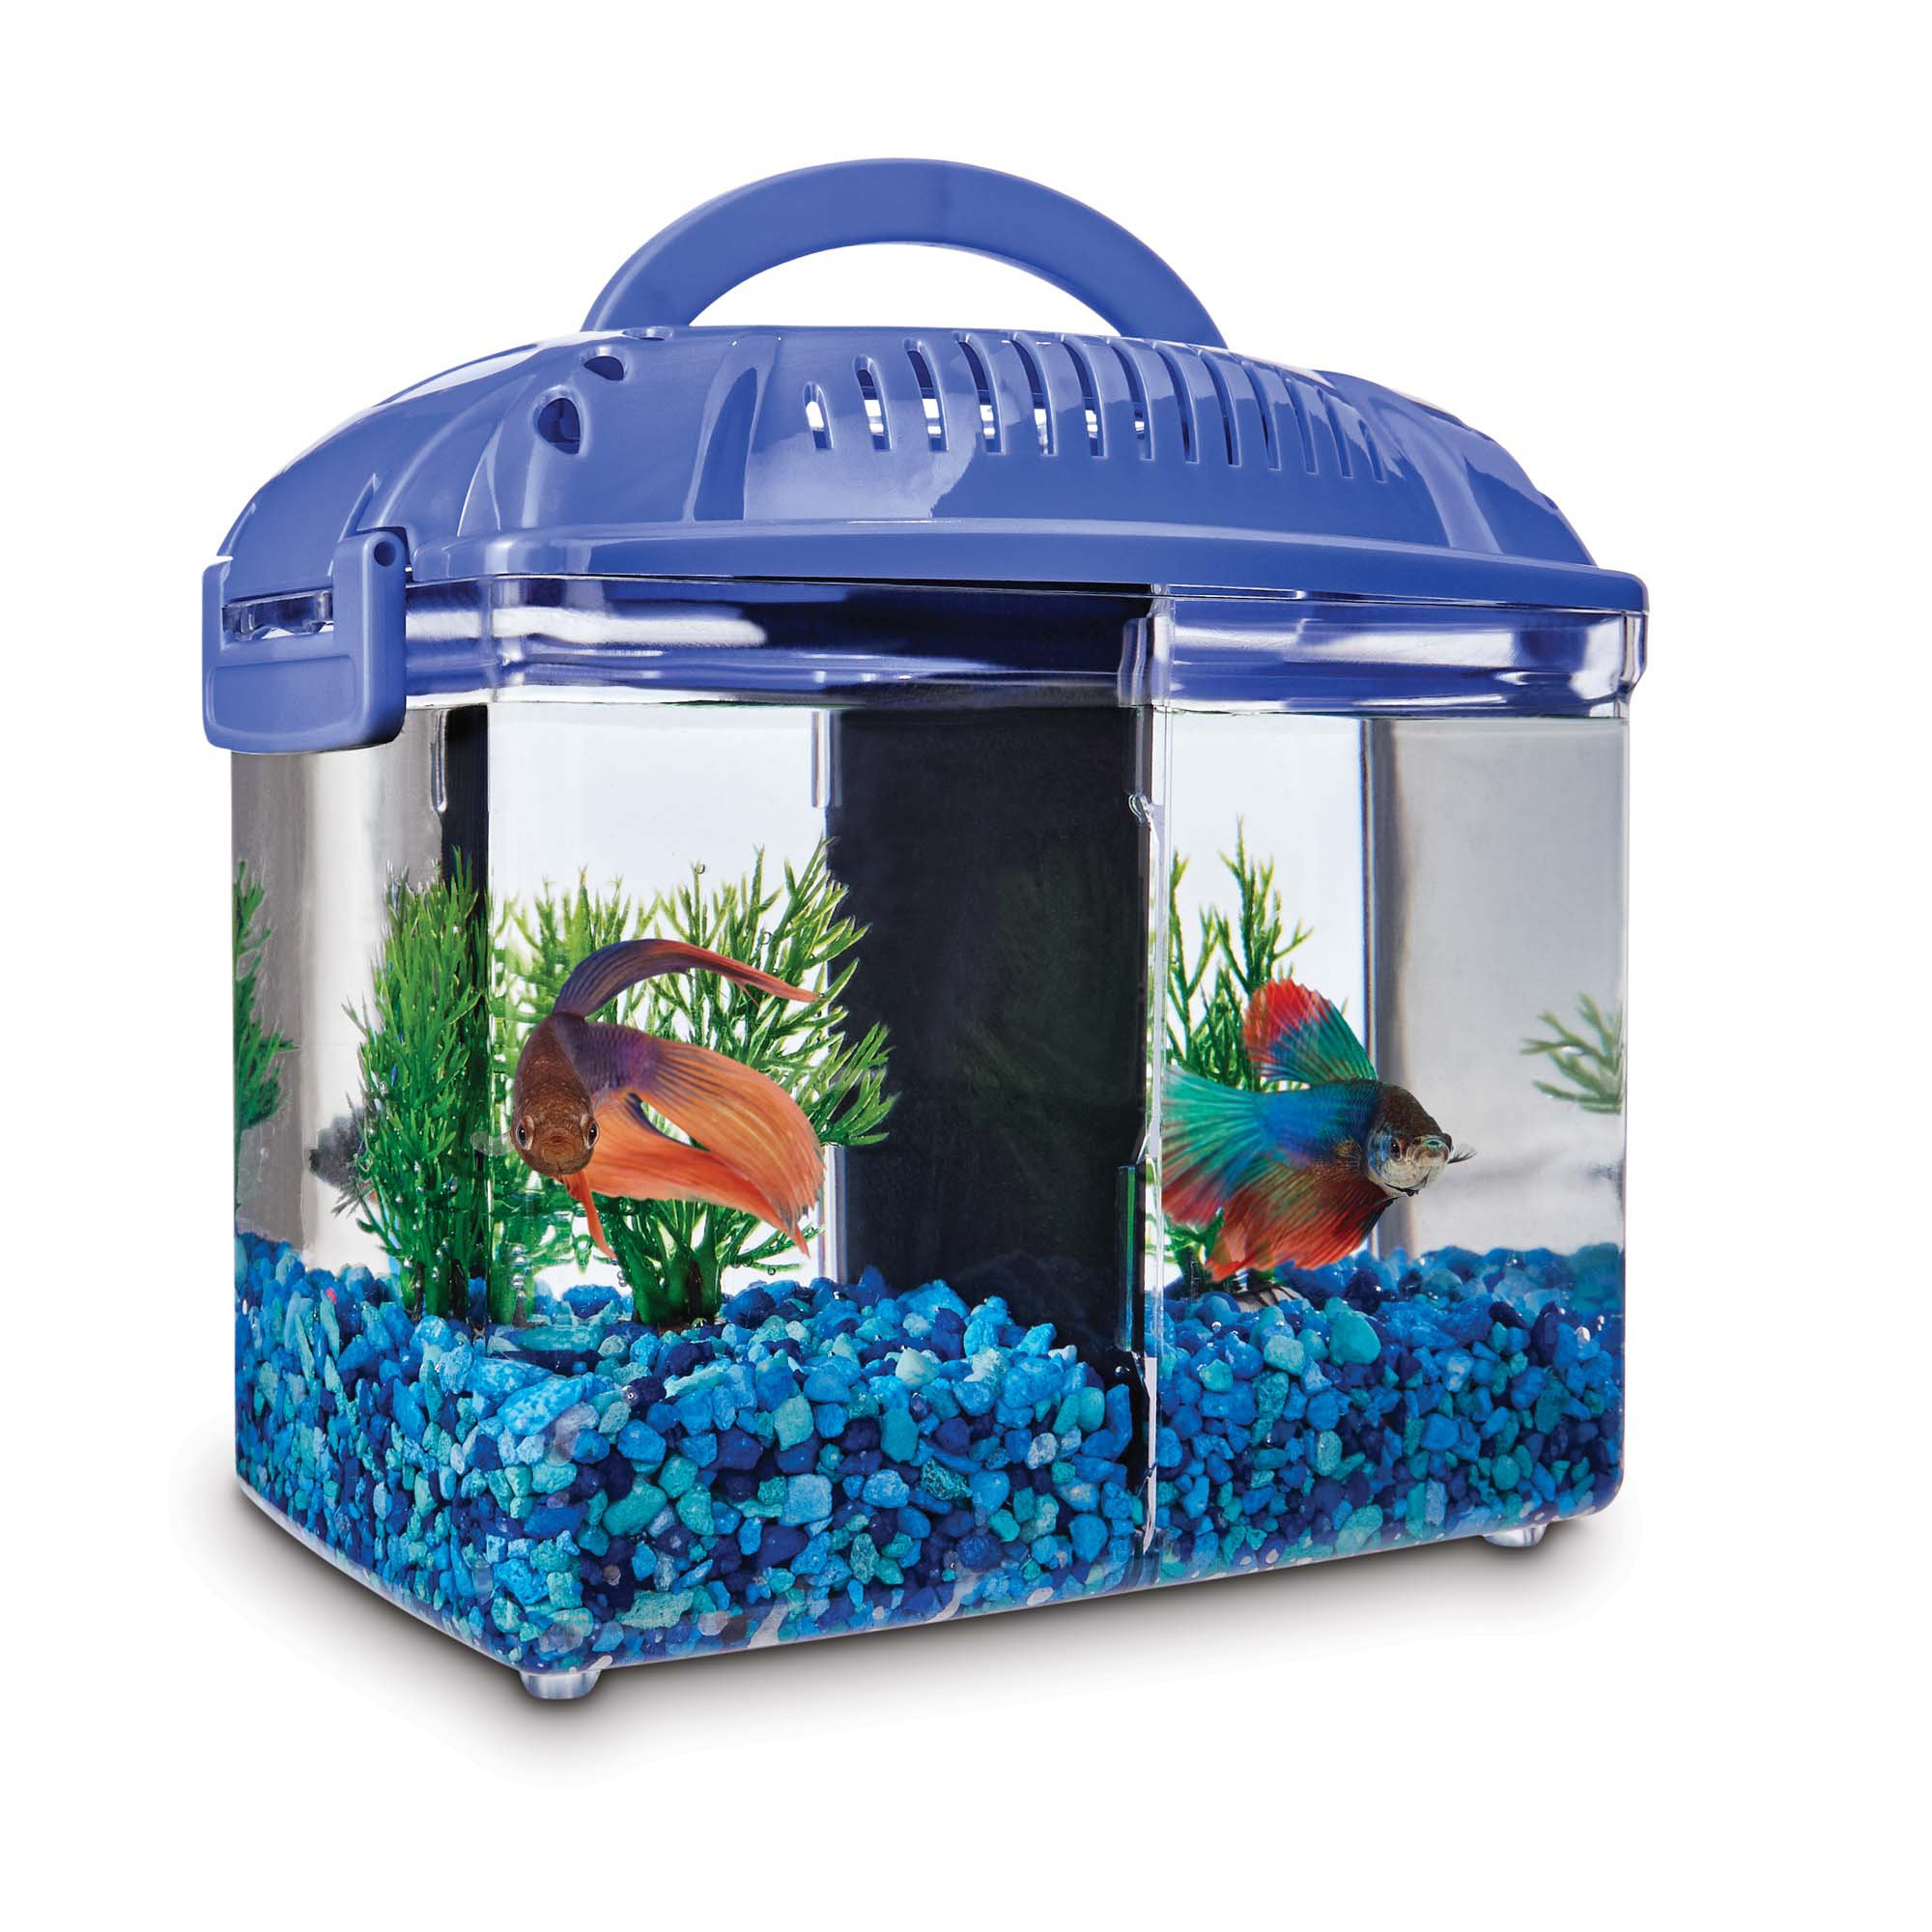 Imagitarium betta fish dual habitat tank in blue petco for Betta fish tanks petco